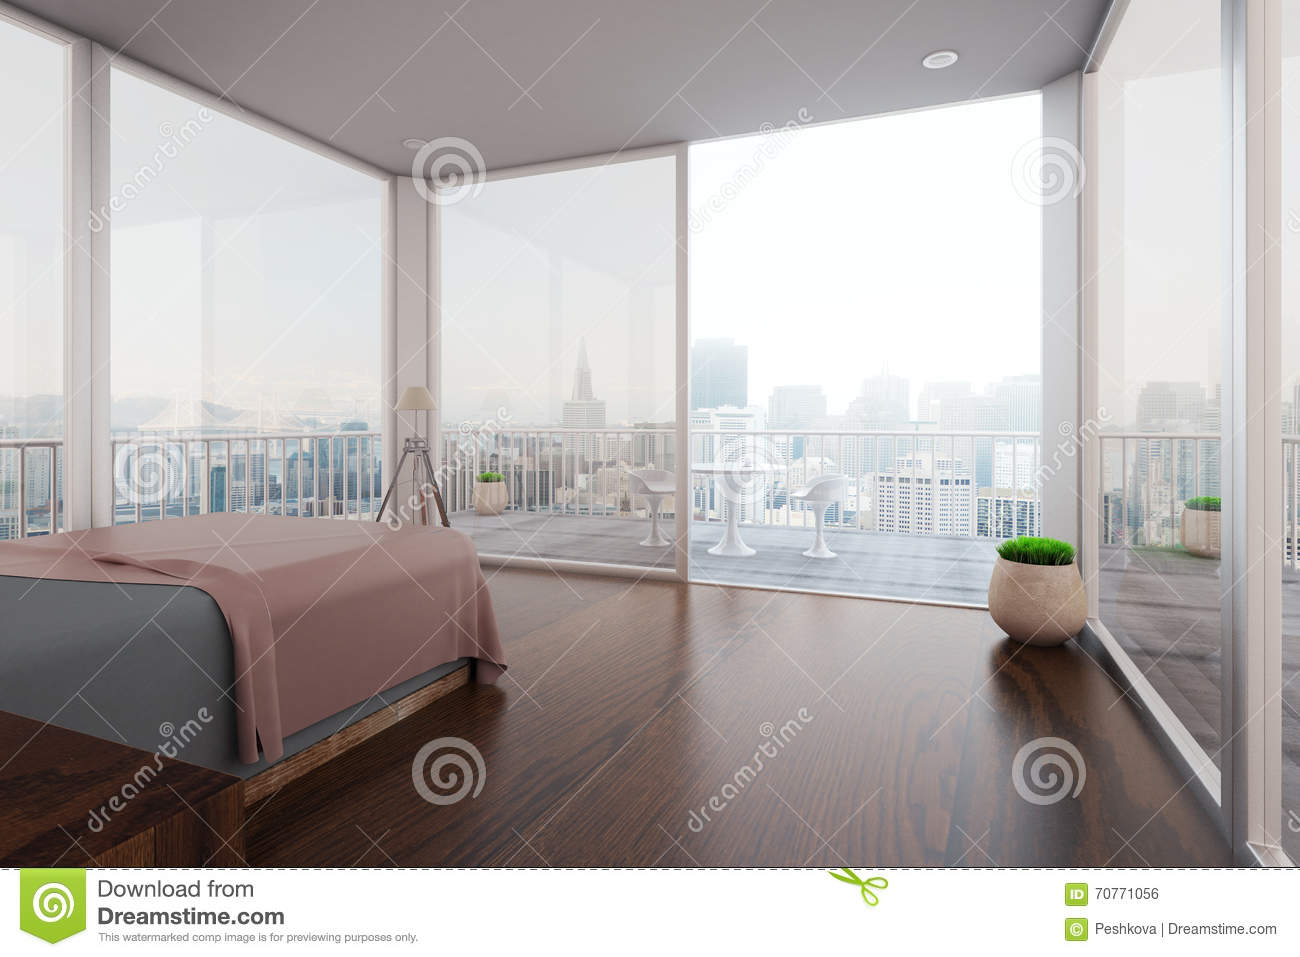 Interior with balcony stock illustration image 70771056 for Interior design bedroom with balcony